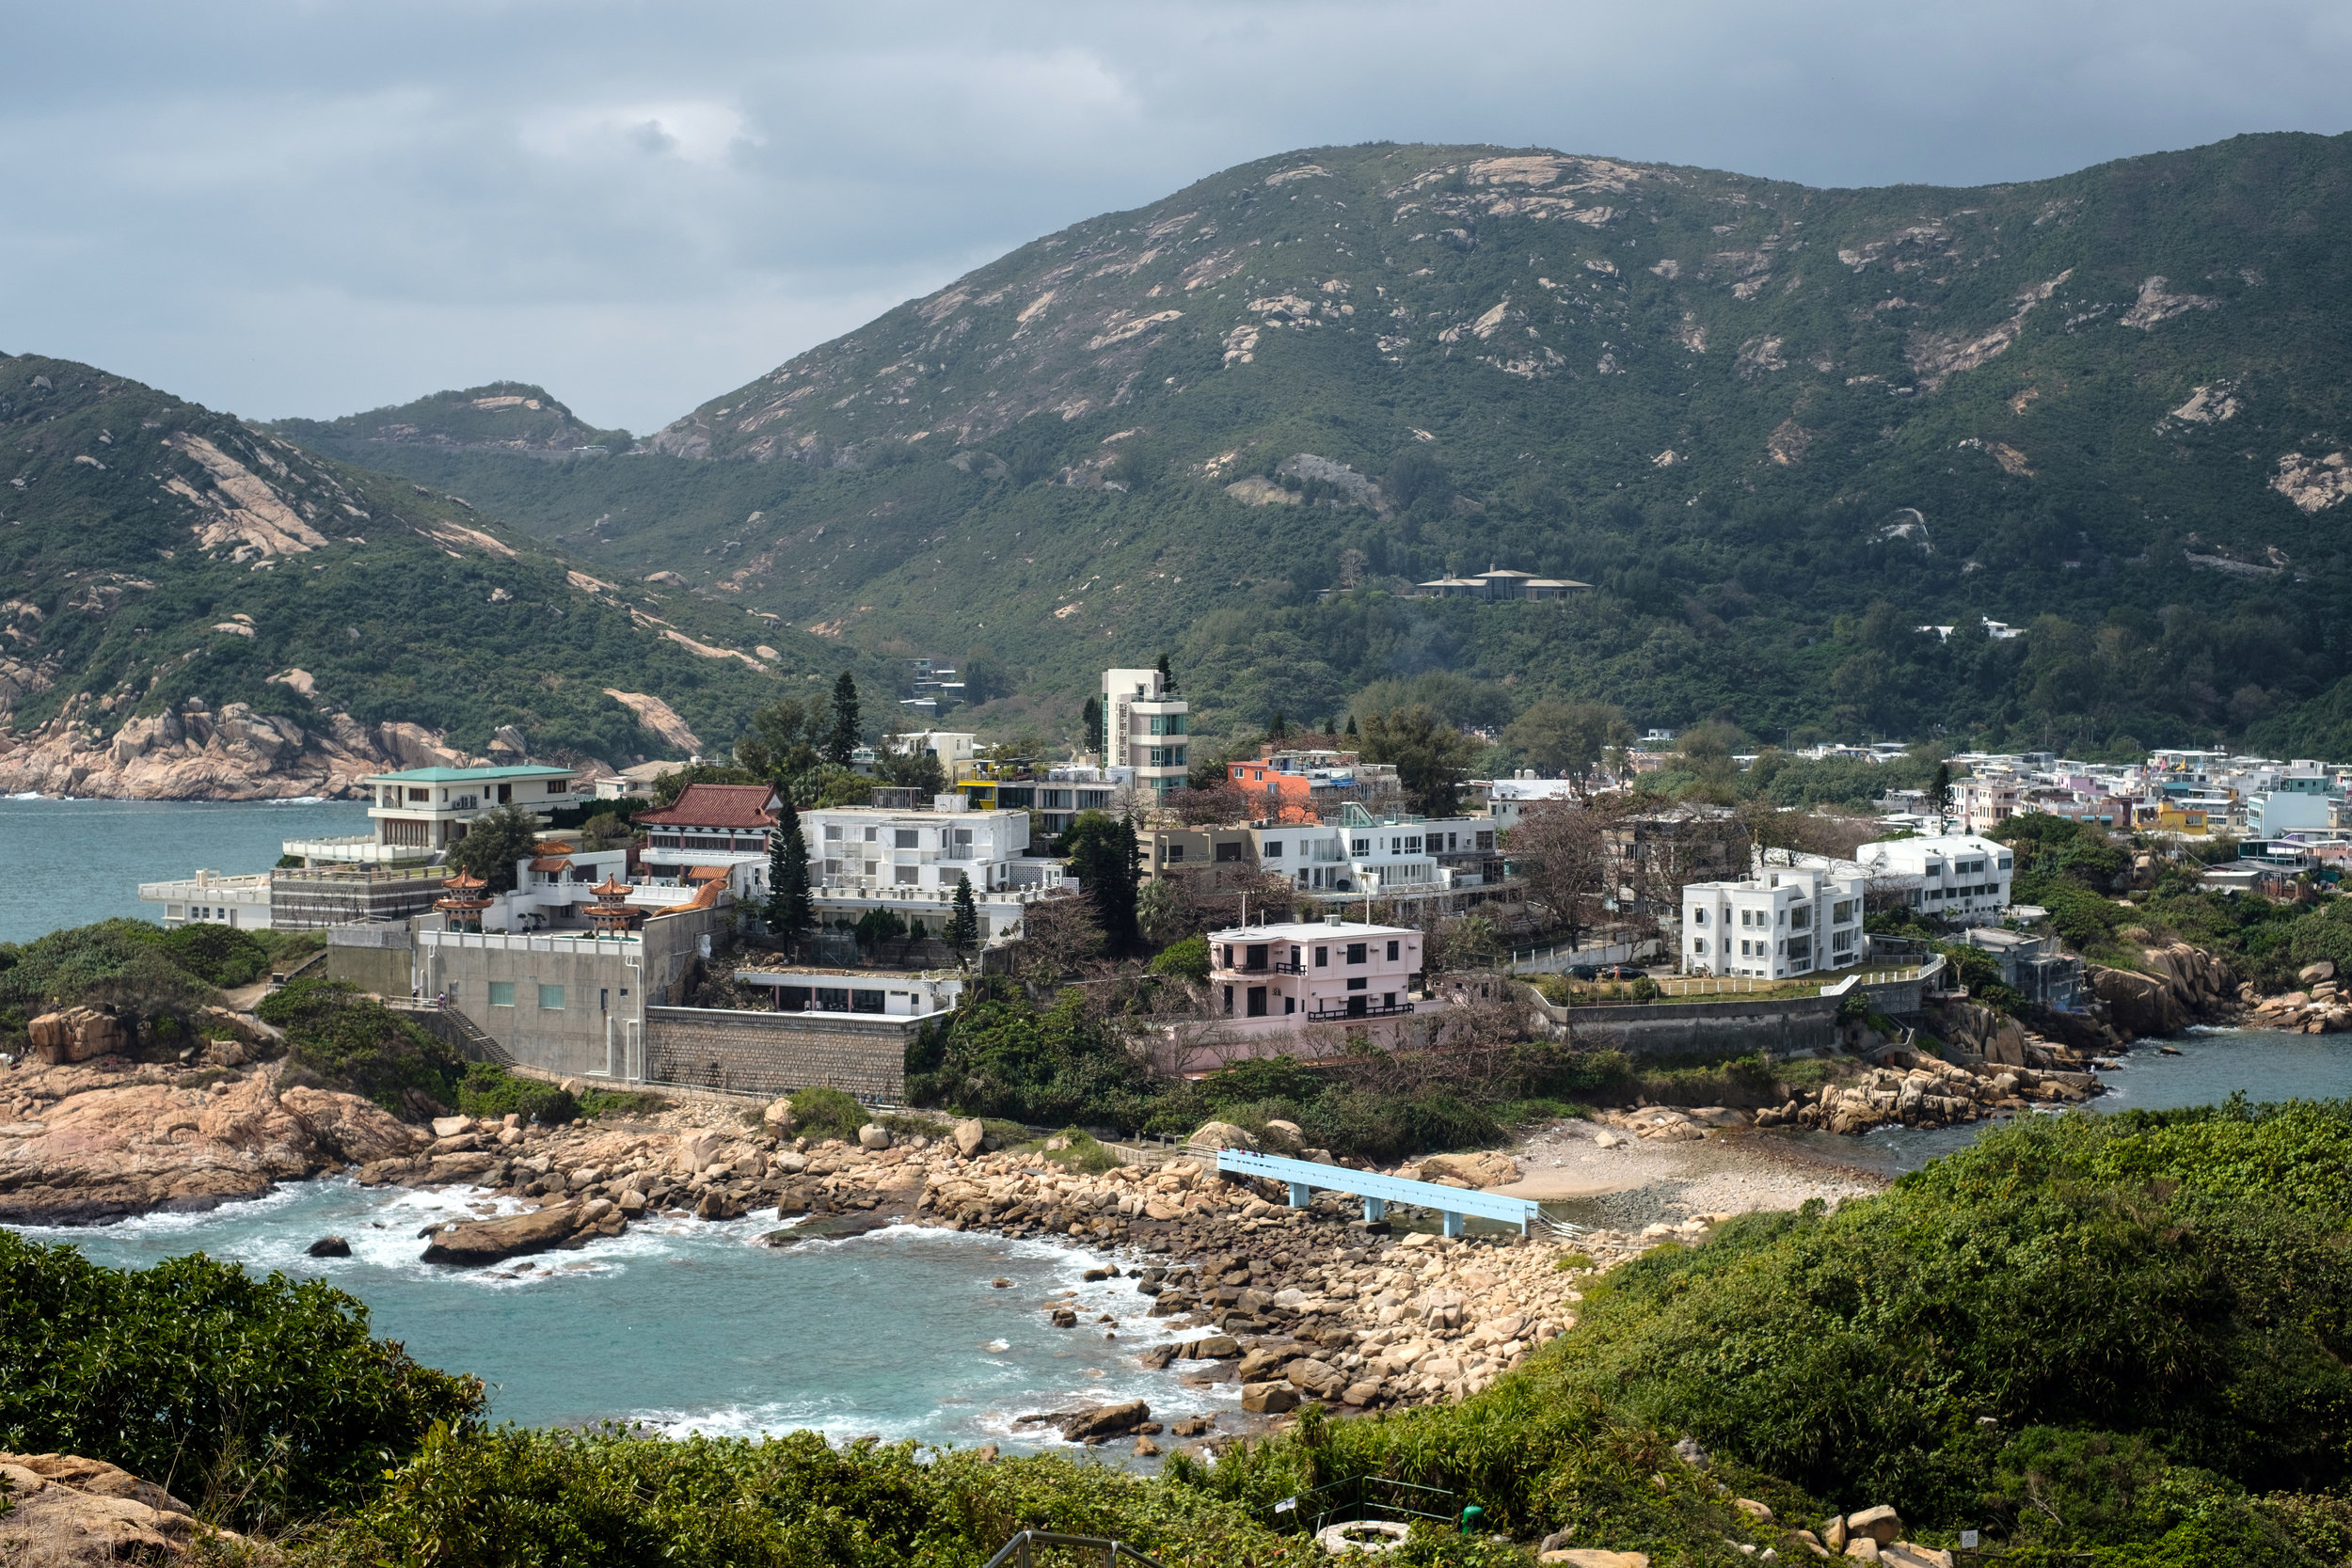 The coastal town of Shek O in Hong Kong